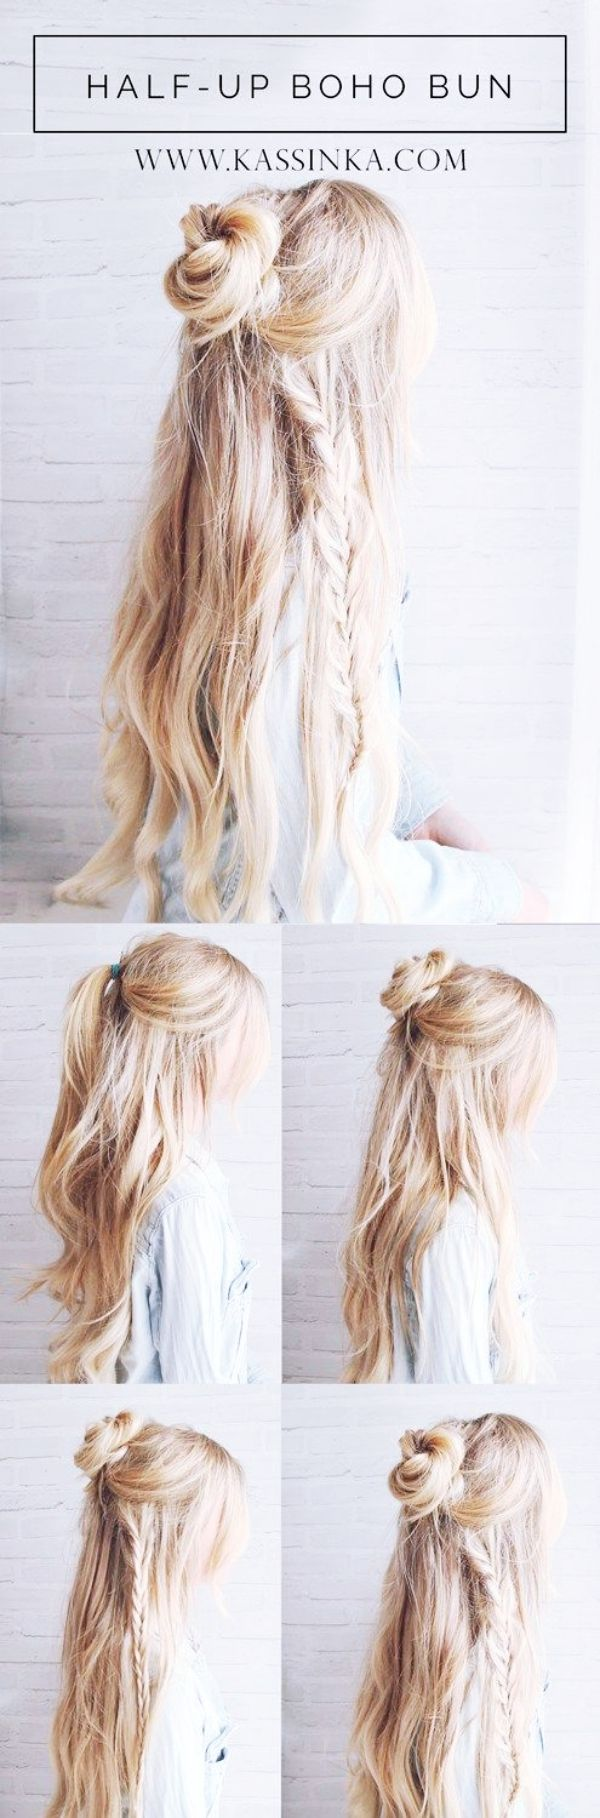 40 Gorgeous Wedding Hairstyles For Long Hair | Unique hairstyles ...